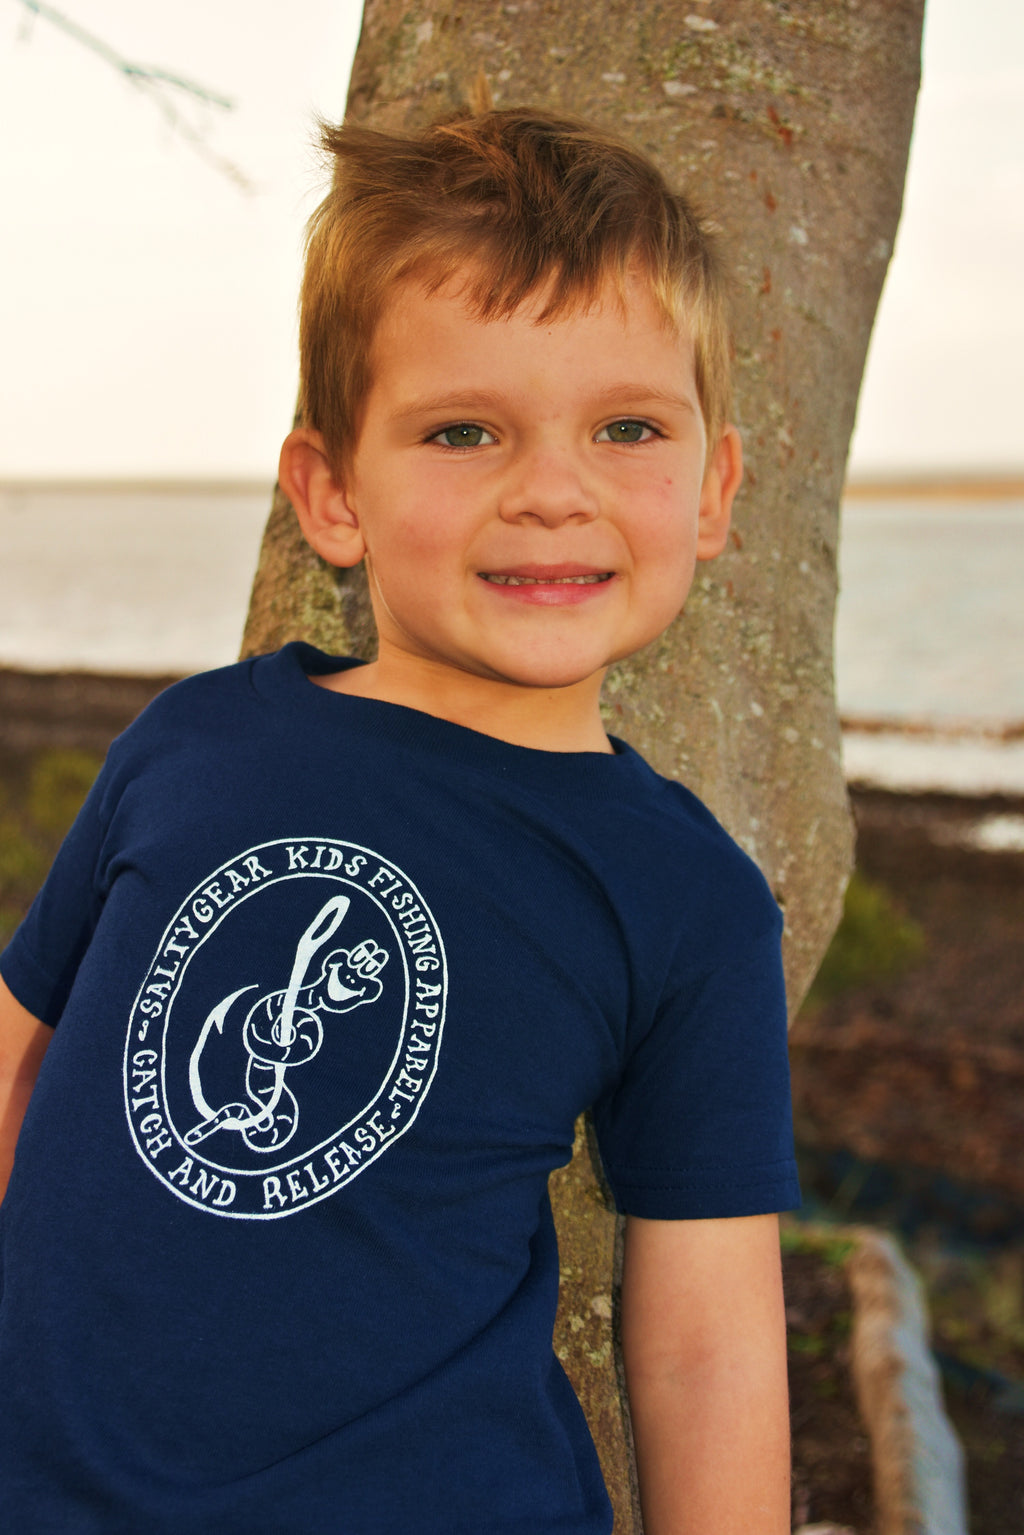 WORM ON HOOK Short Sleeve Cotton Tshirt TODDLER